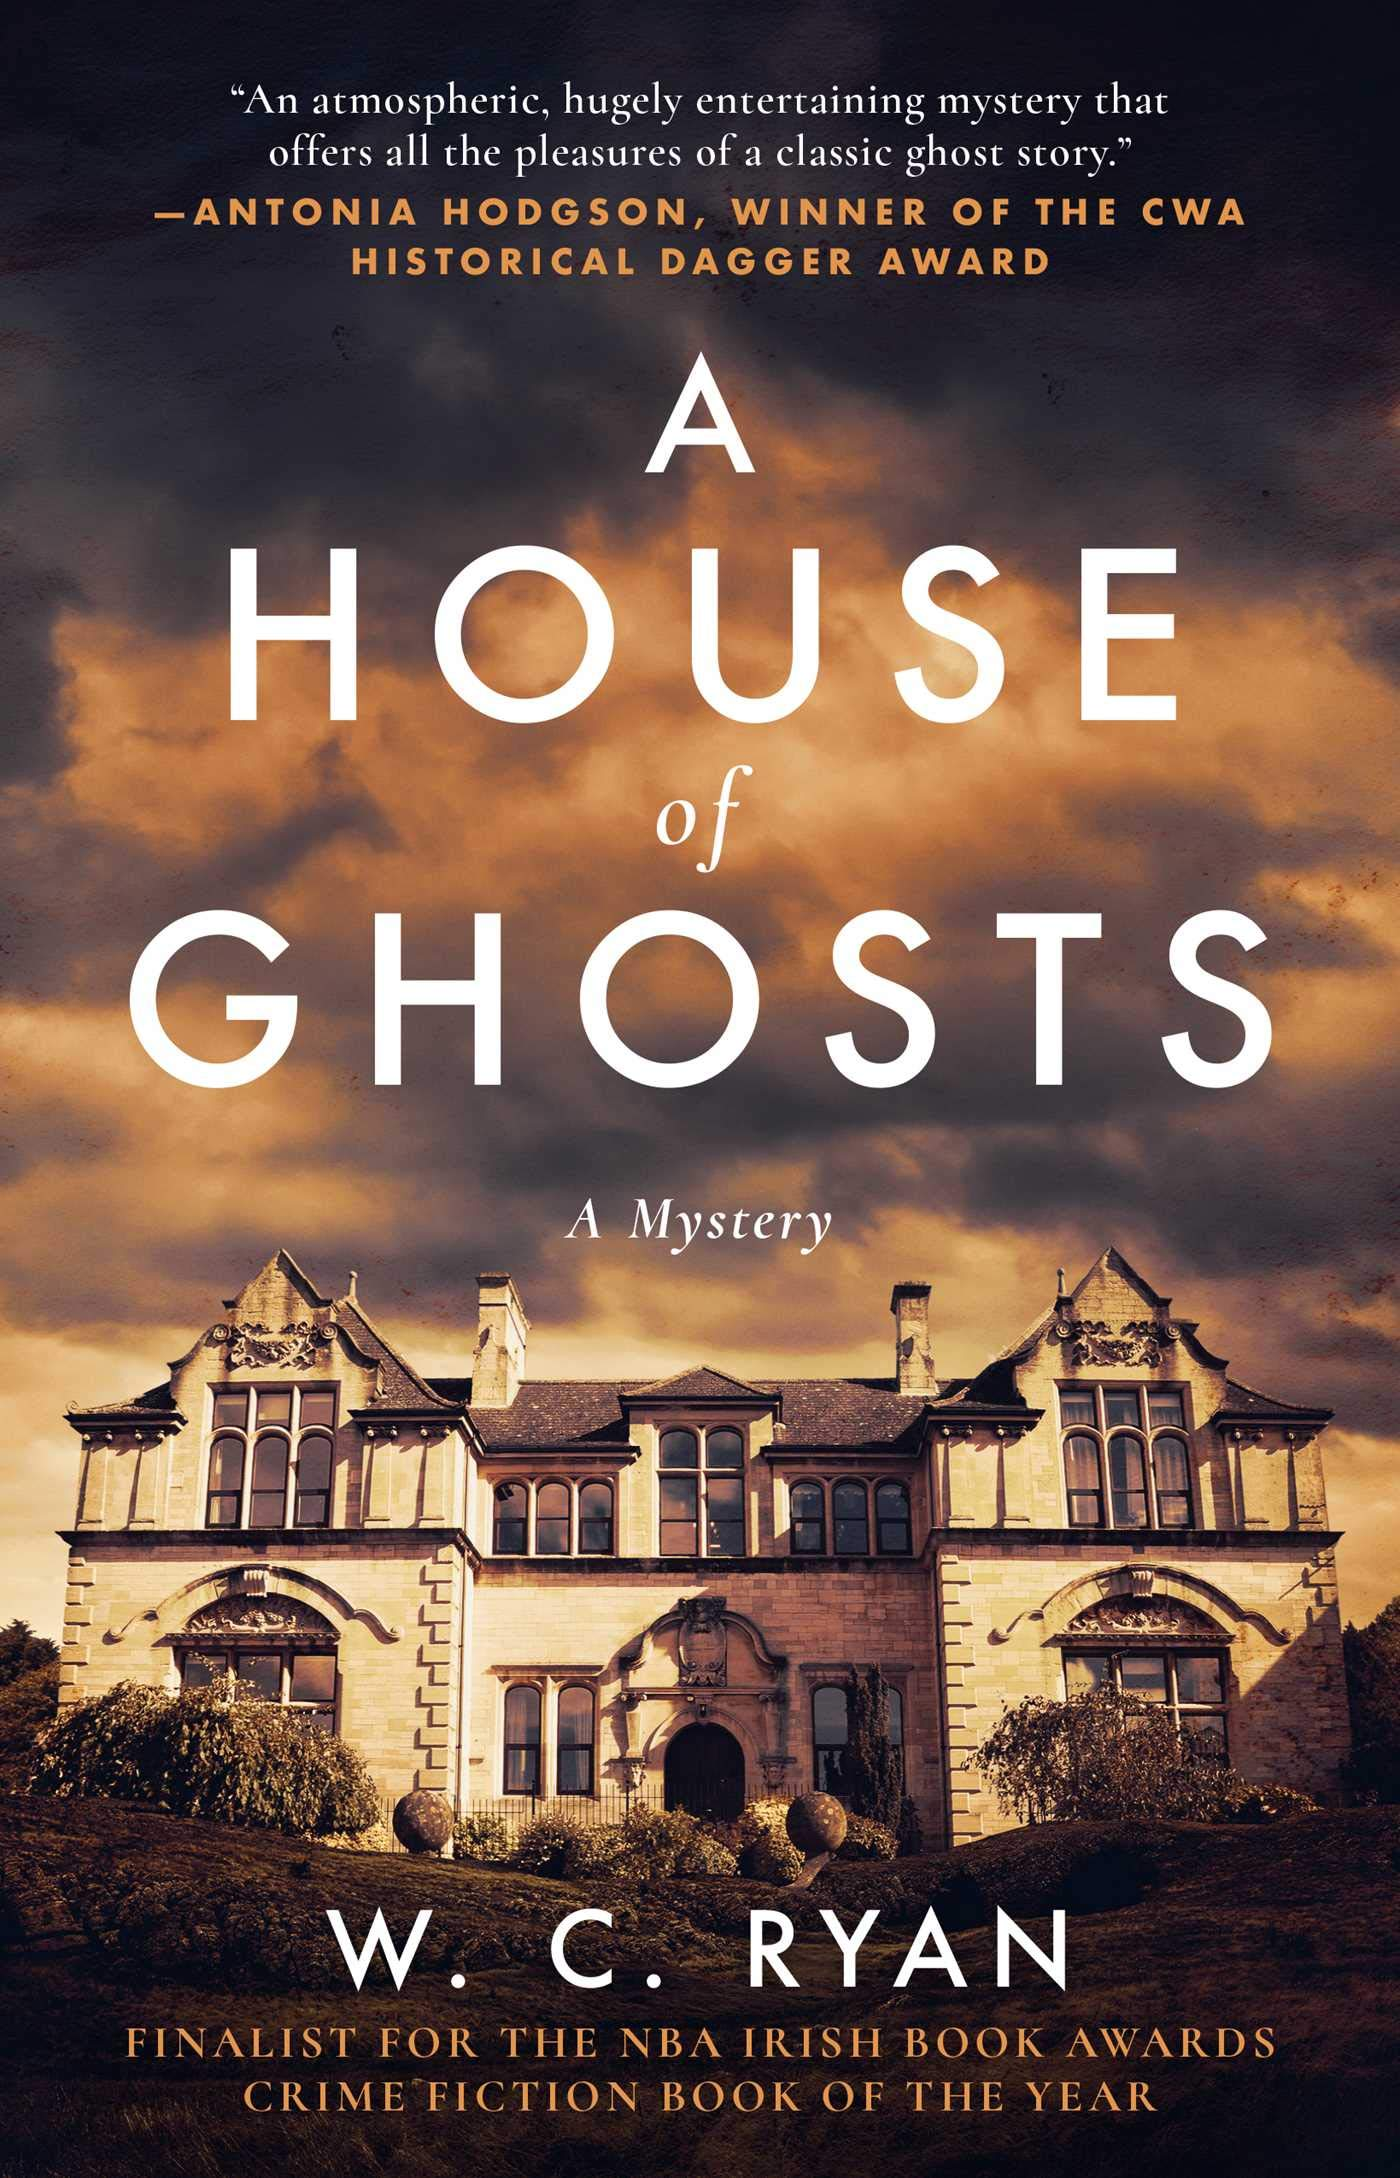 A House of Ghosts: Amazon.it: Ryan, W. C.: Libri in altre lingue